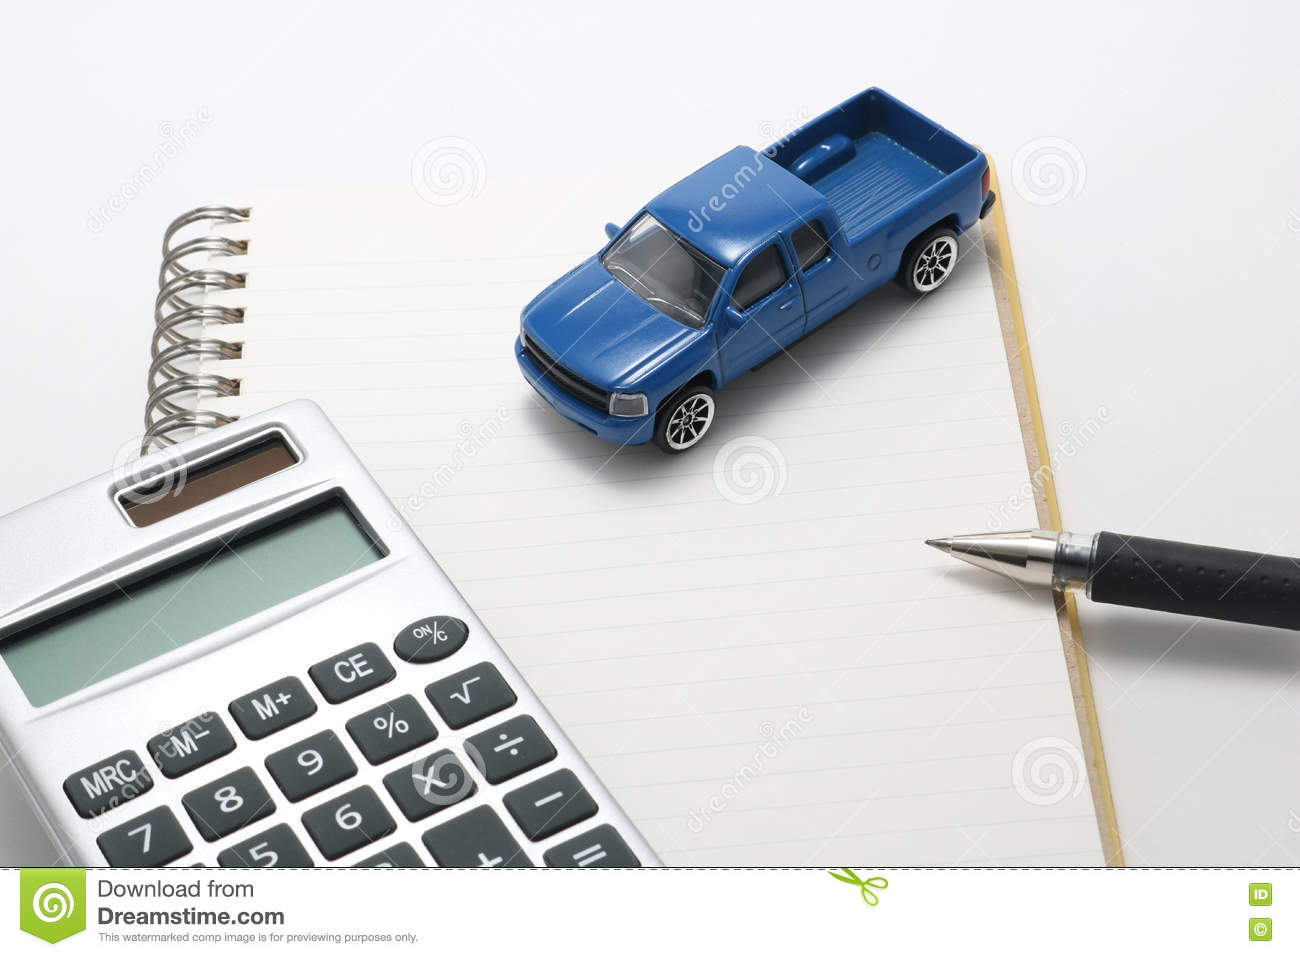 Toy car truck calculator notebook and pen